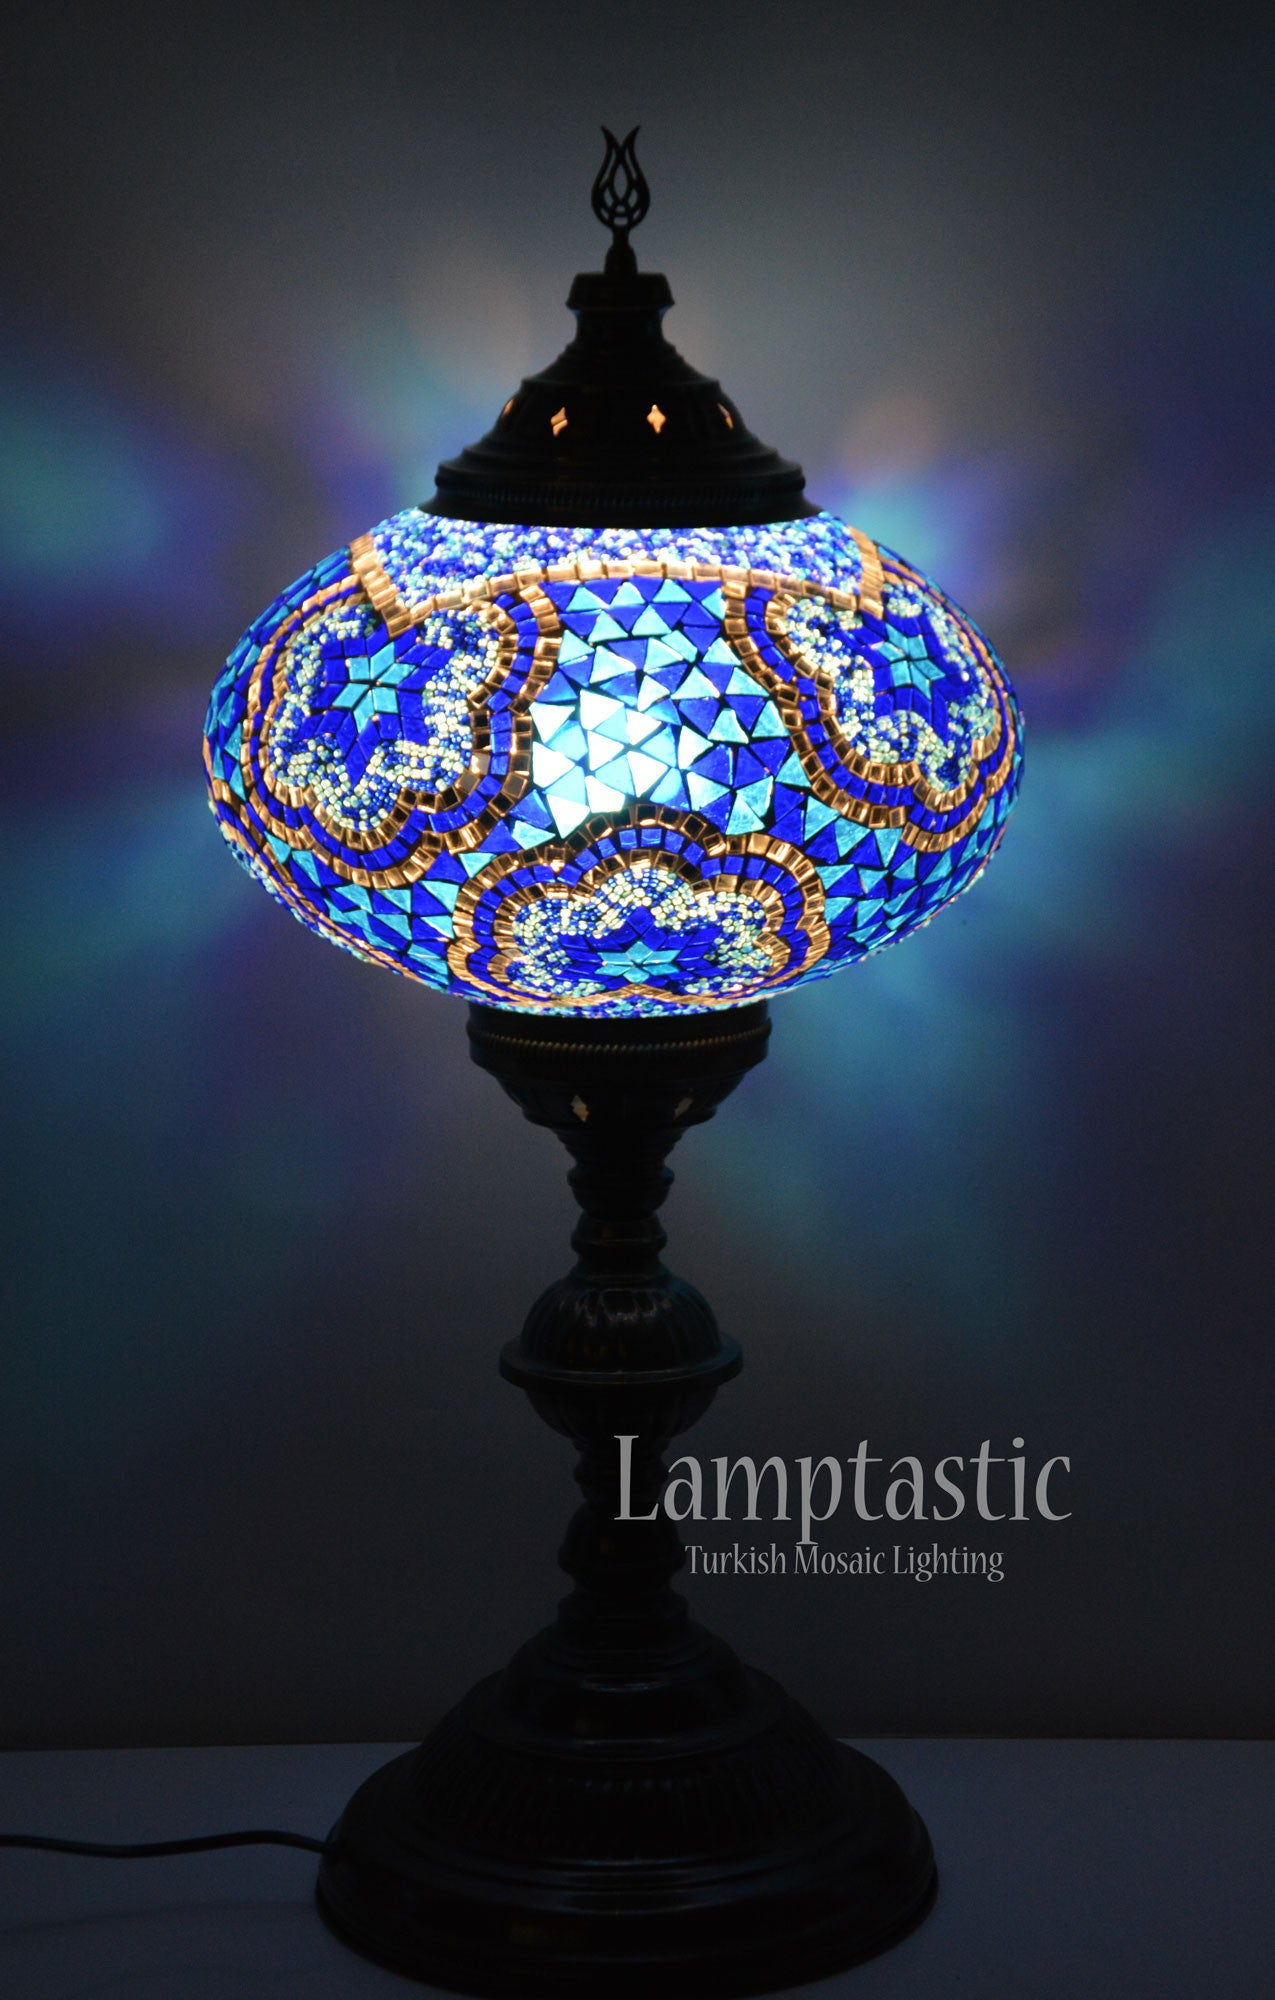 Large Blue Turkish Mosaic Glass Floor Lamp – Lamptastic